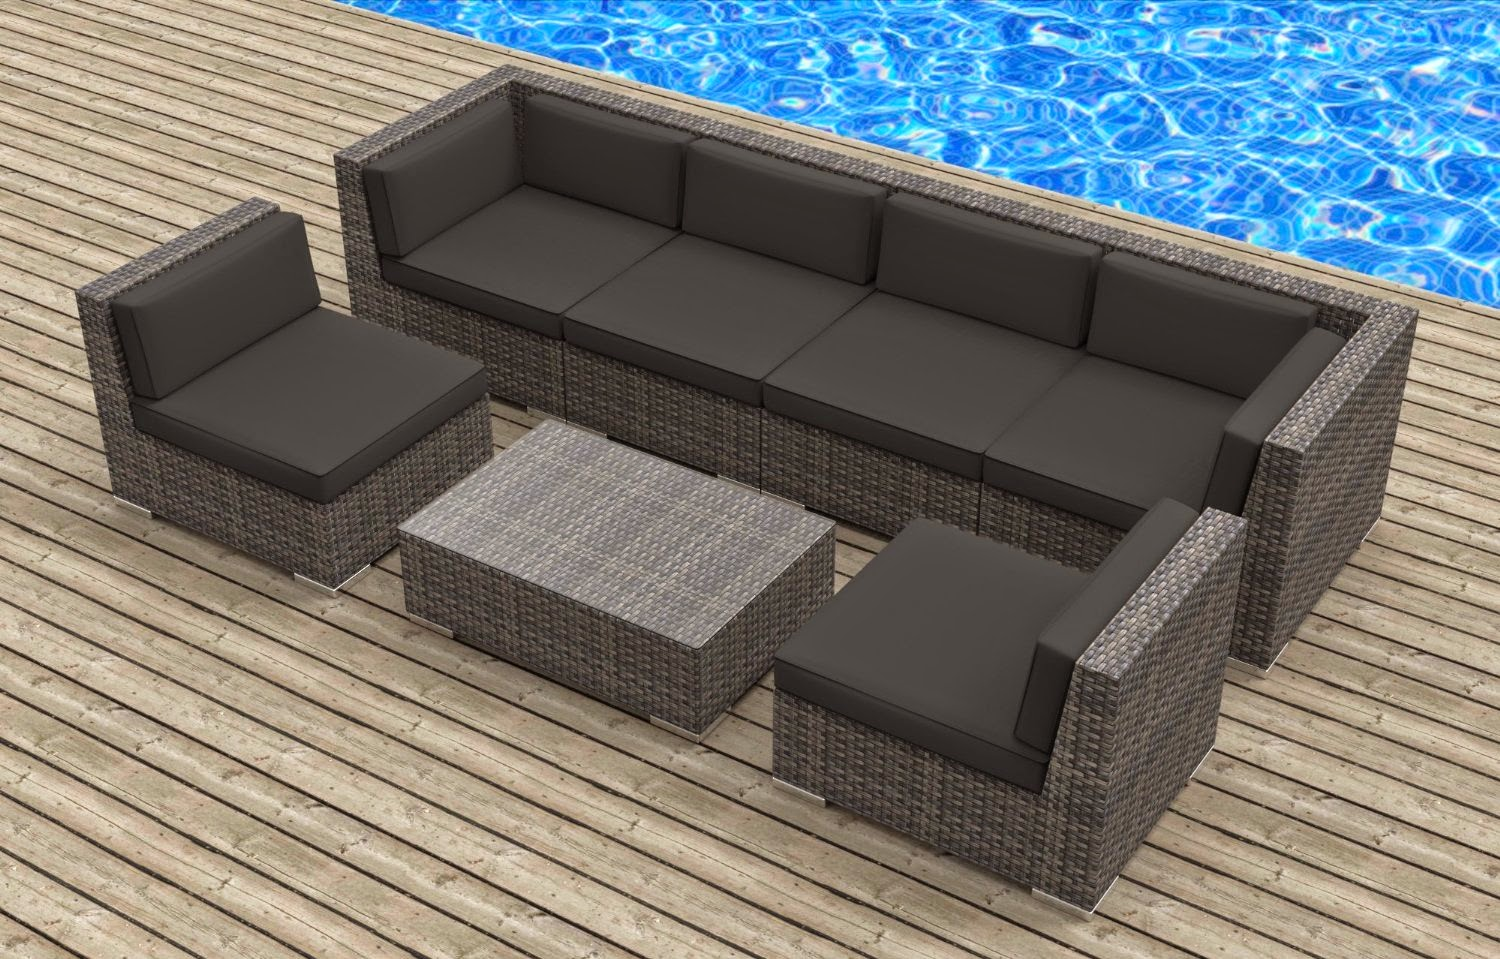 Urban furnishing modern outdoor backyard wicker rattan for Outdoor modern patio furniture